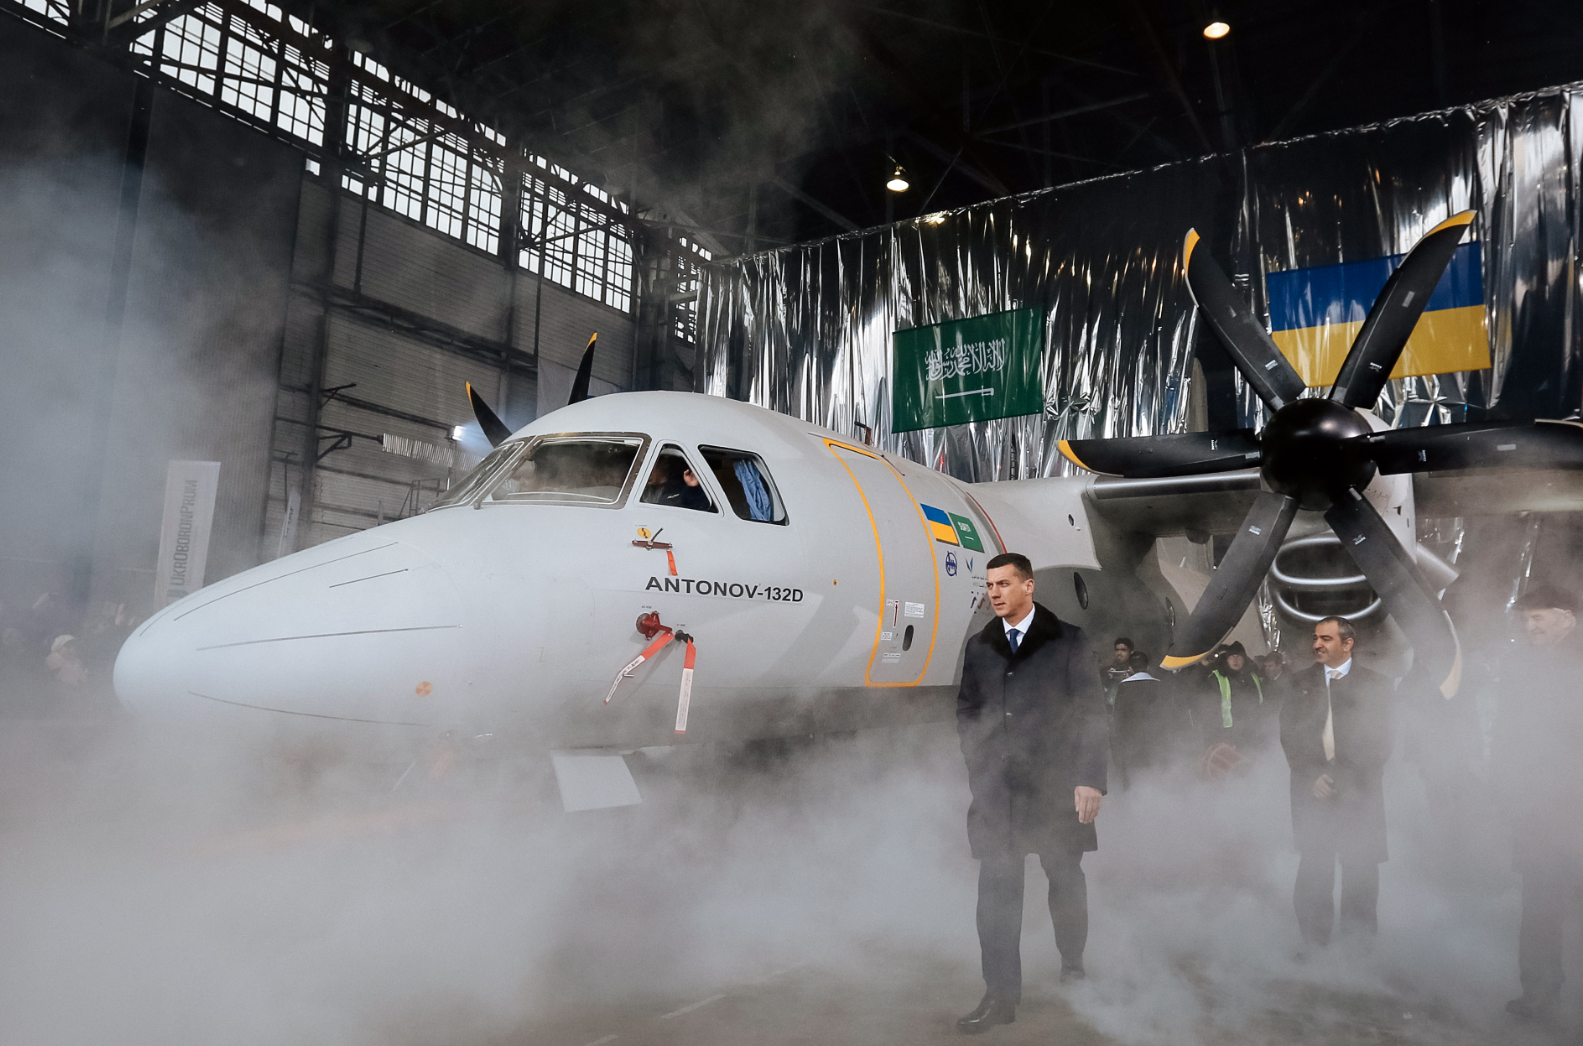 Guests attend the presentation of the new AN-132D aircraft demonstrator in the final assembly shop of the Antonov aircraft plant in Kiev, 20 December 2016. Source: Vostock-Photo